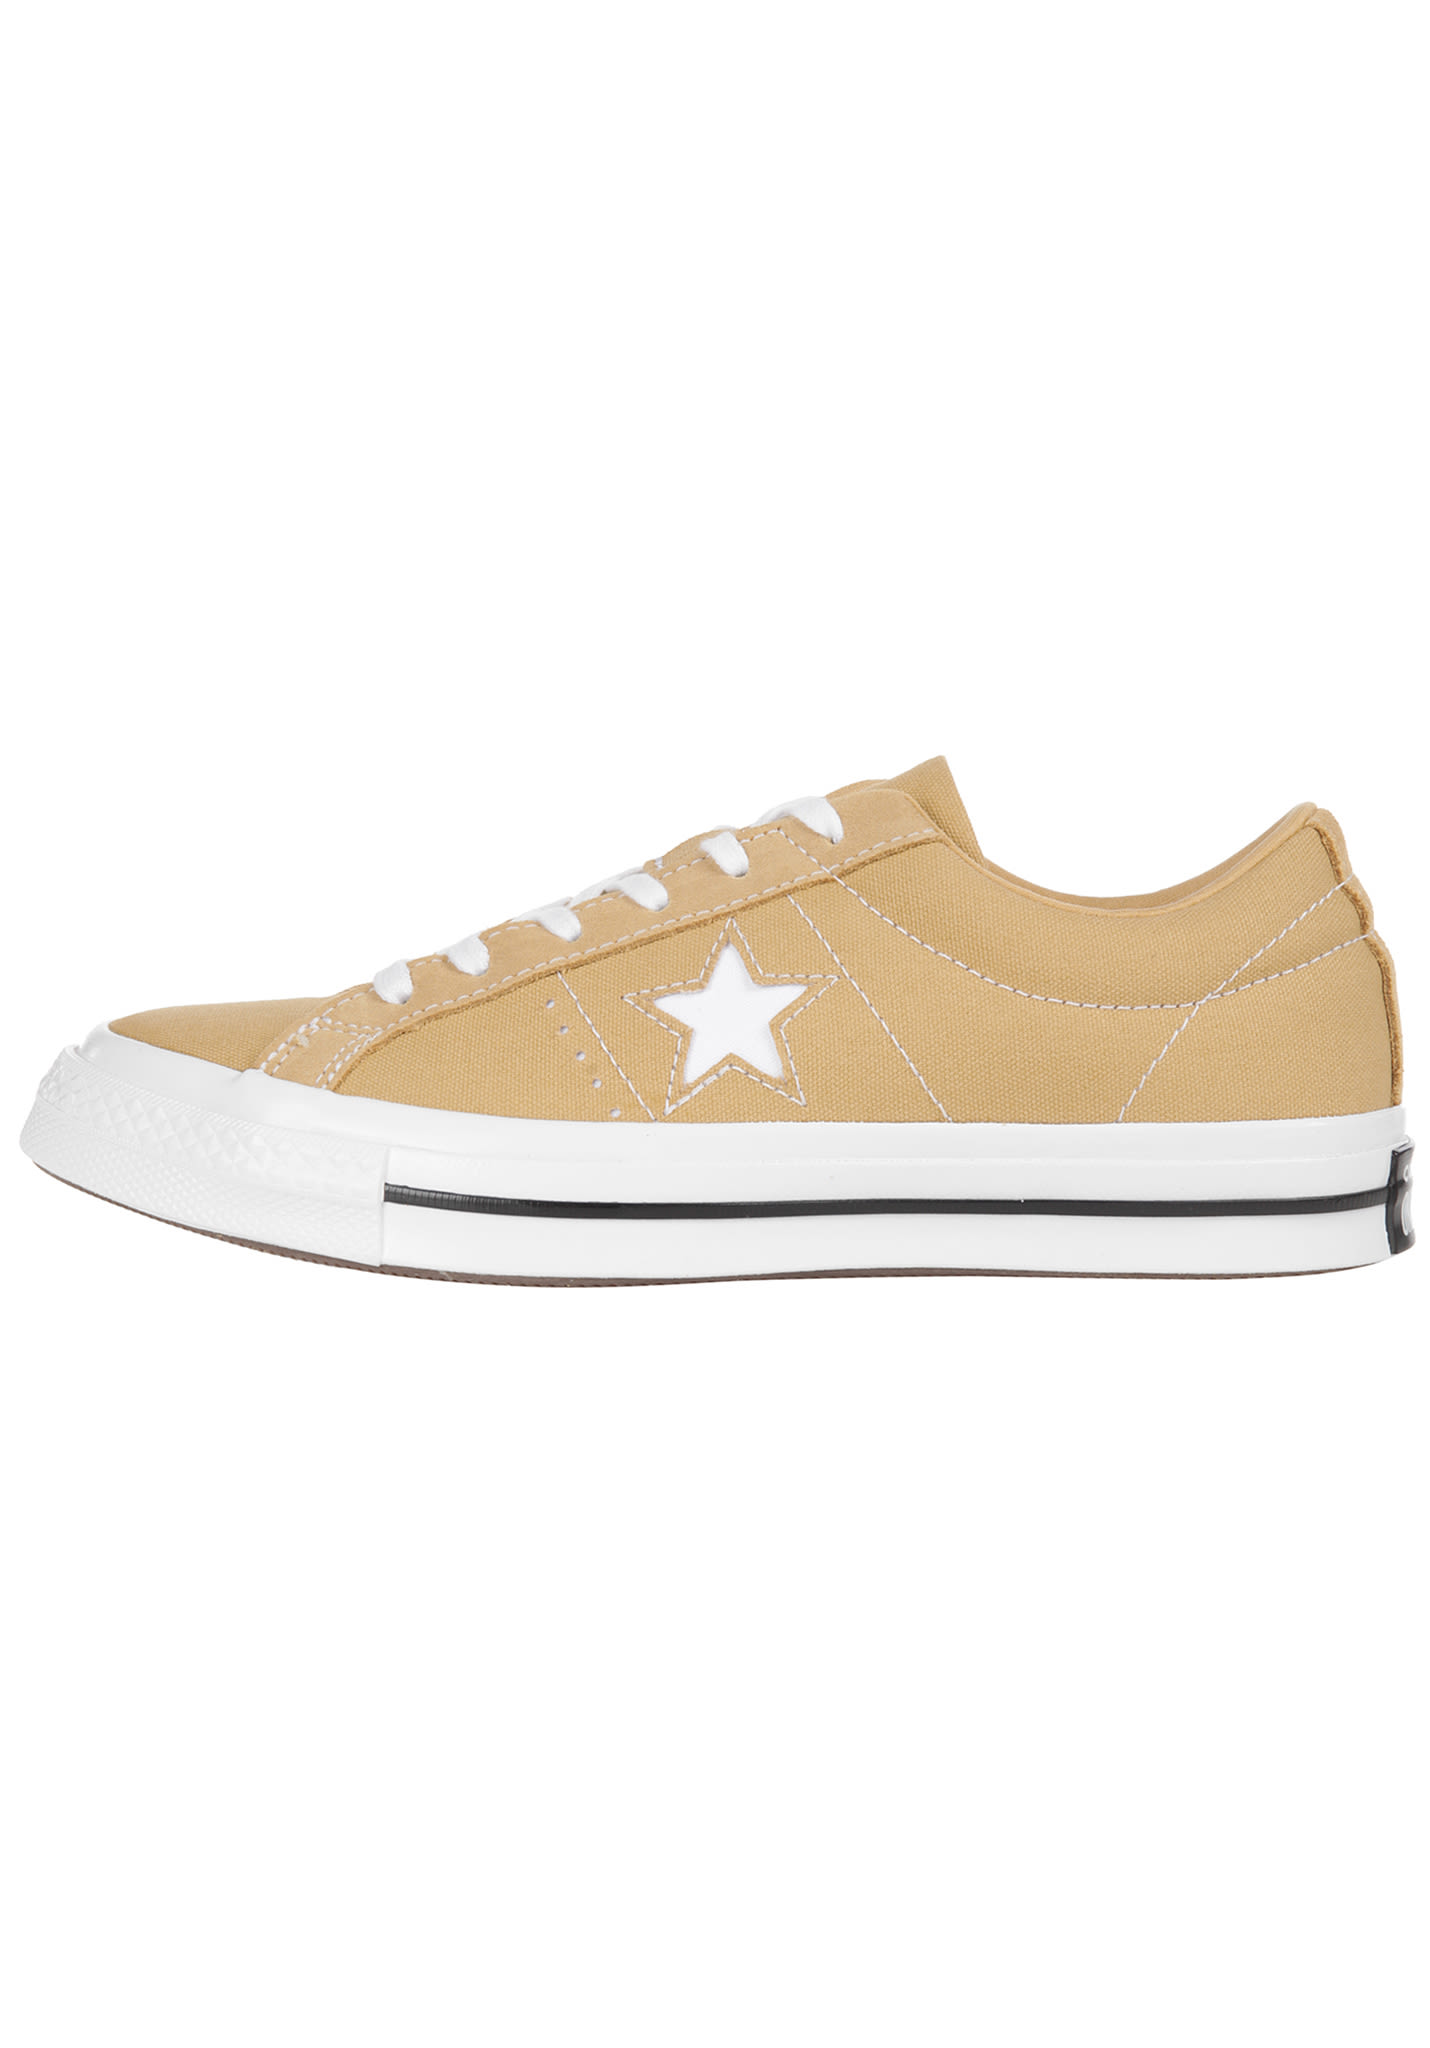 Converse One Star Ox Club - Sneakers for Women - Beige - Planet Sports 7aafcd13c